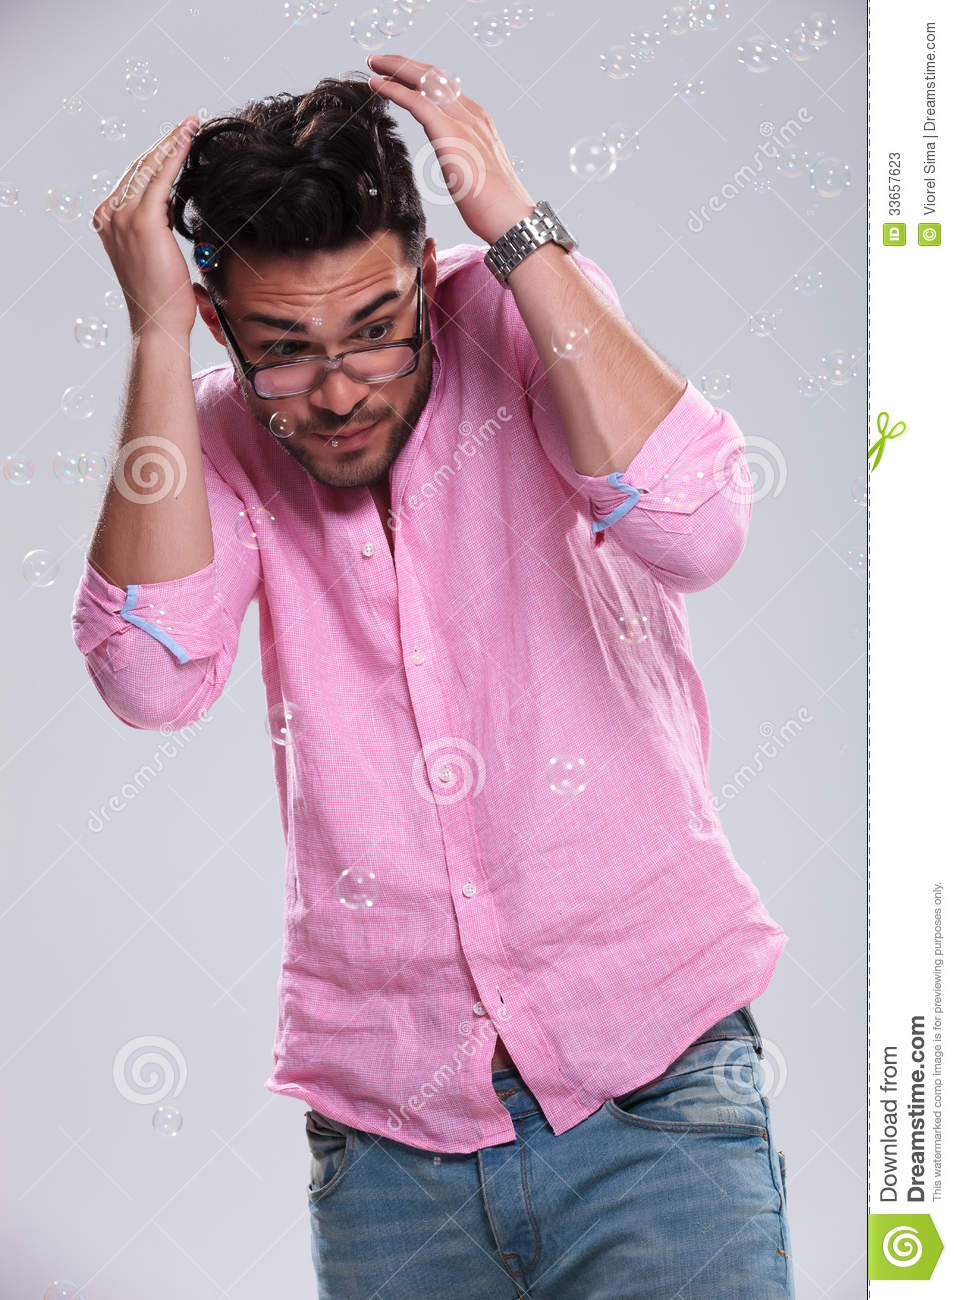 Young Fashion Man Ducking From Bubbles Stock Photos